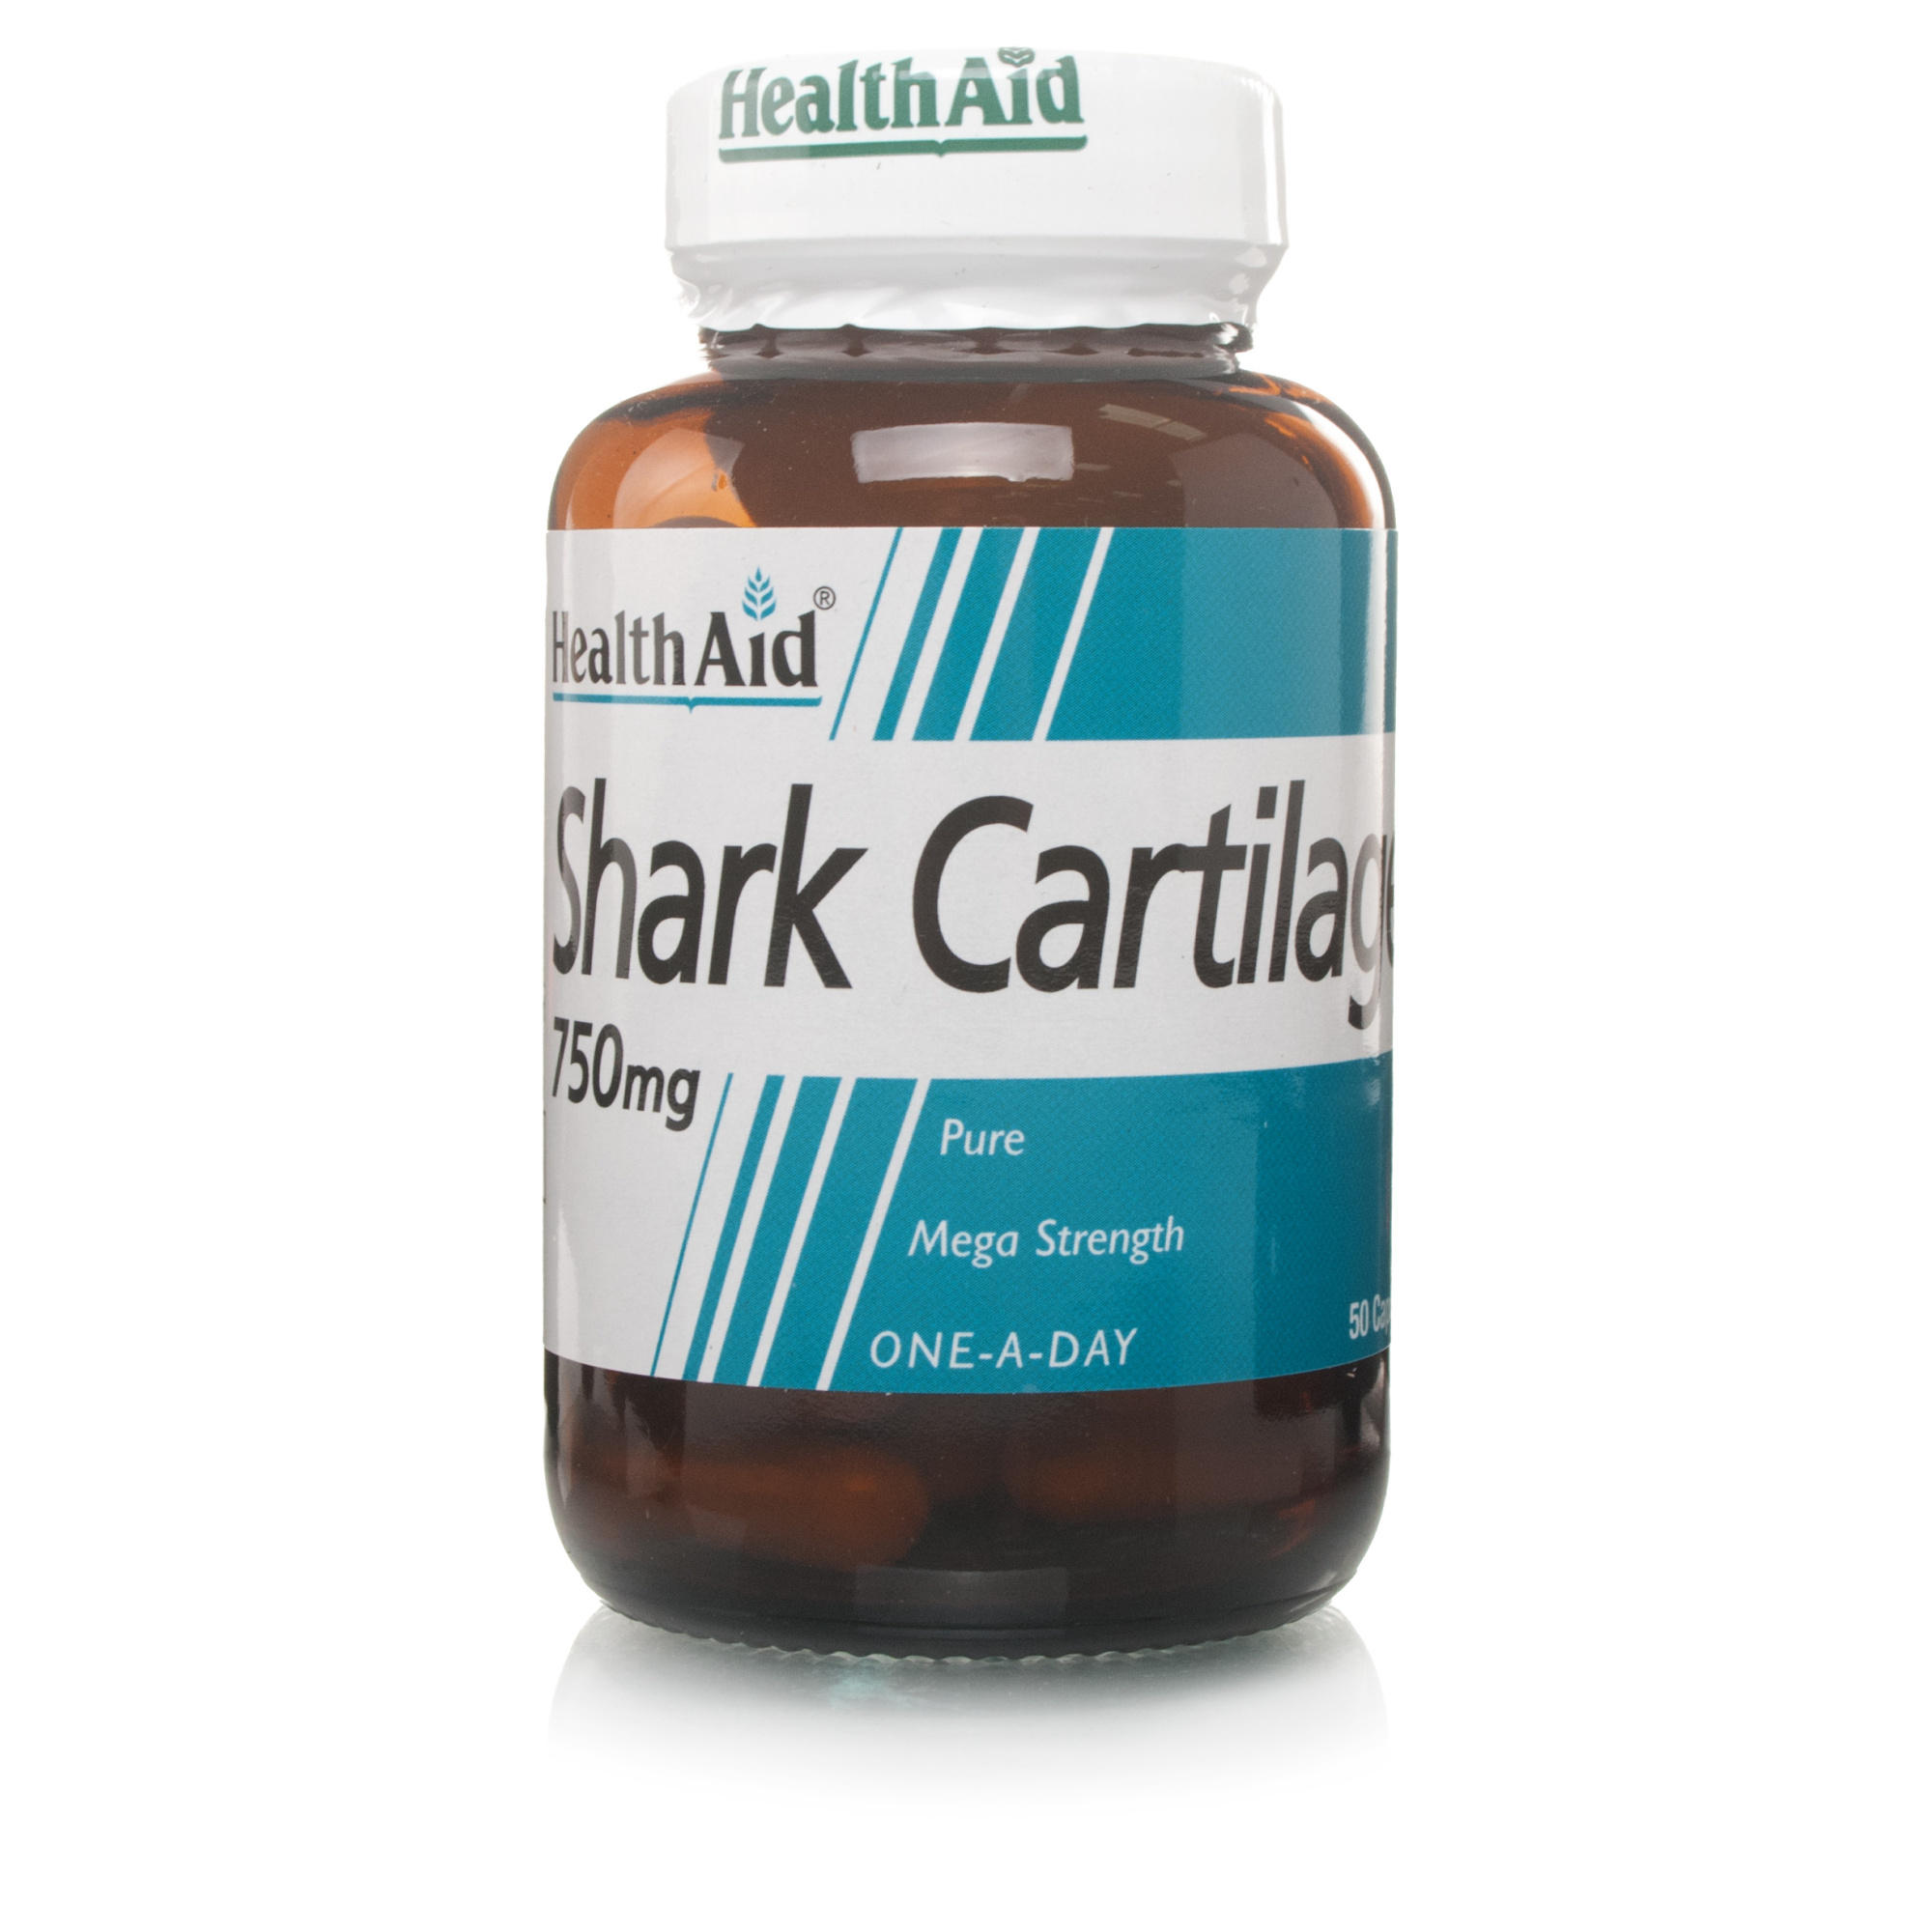 Where to buy shark cartilage